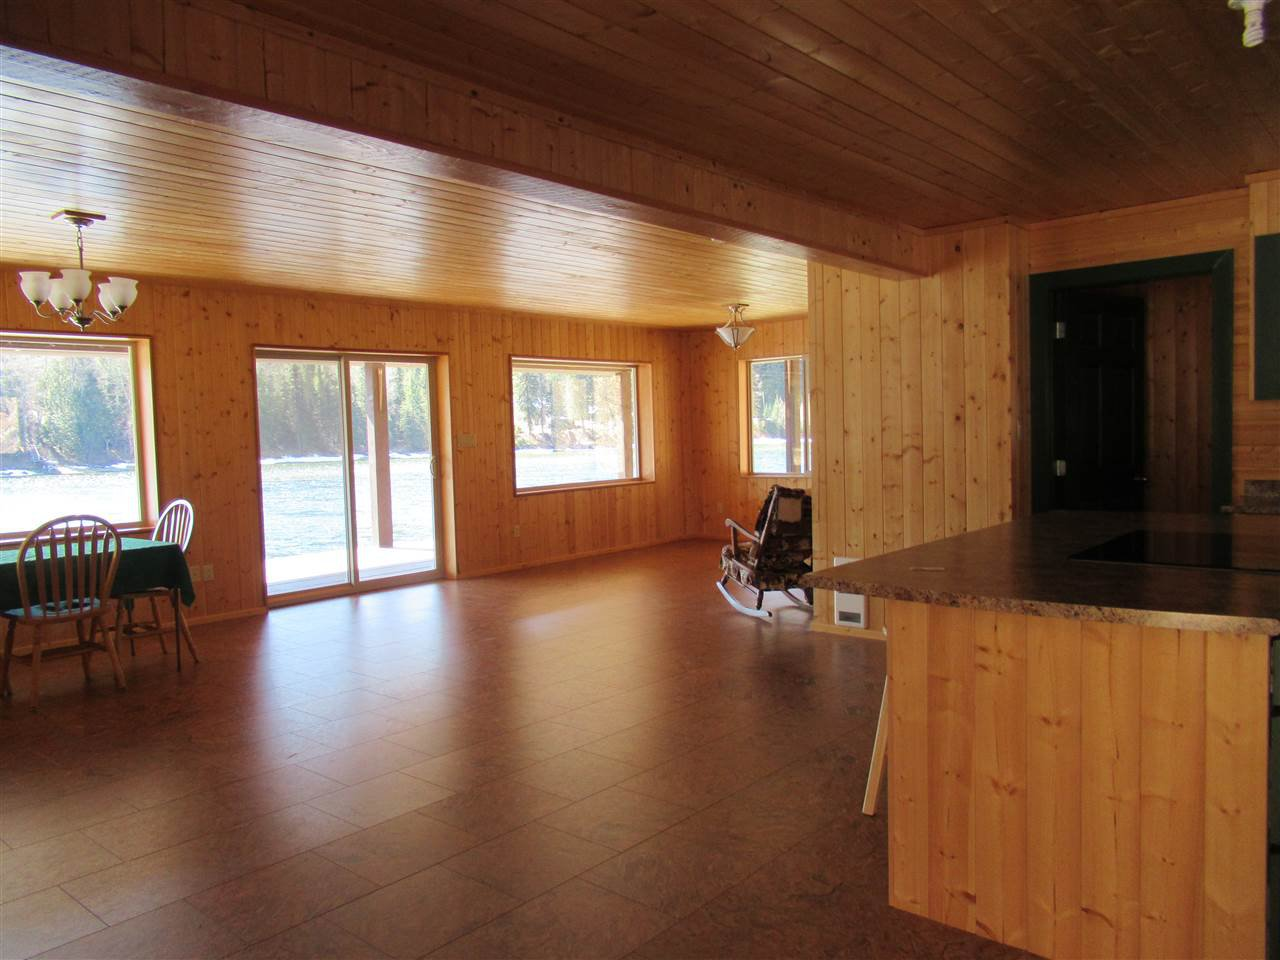 Photo 15: Photos: 6278 KNIGHT Road: Likely House for sale (Williams Lake (Zone 27))  : MLS®# R2361221